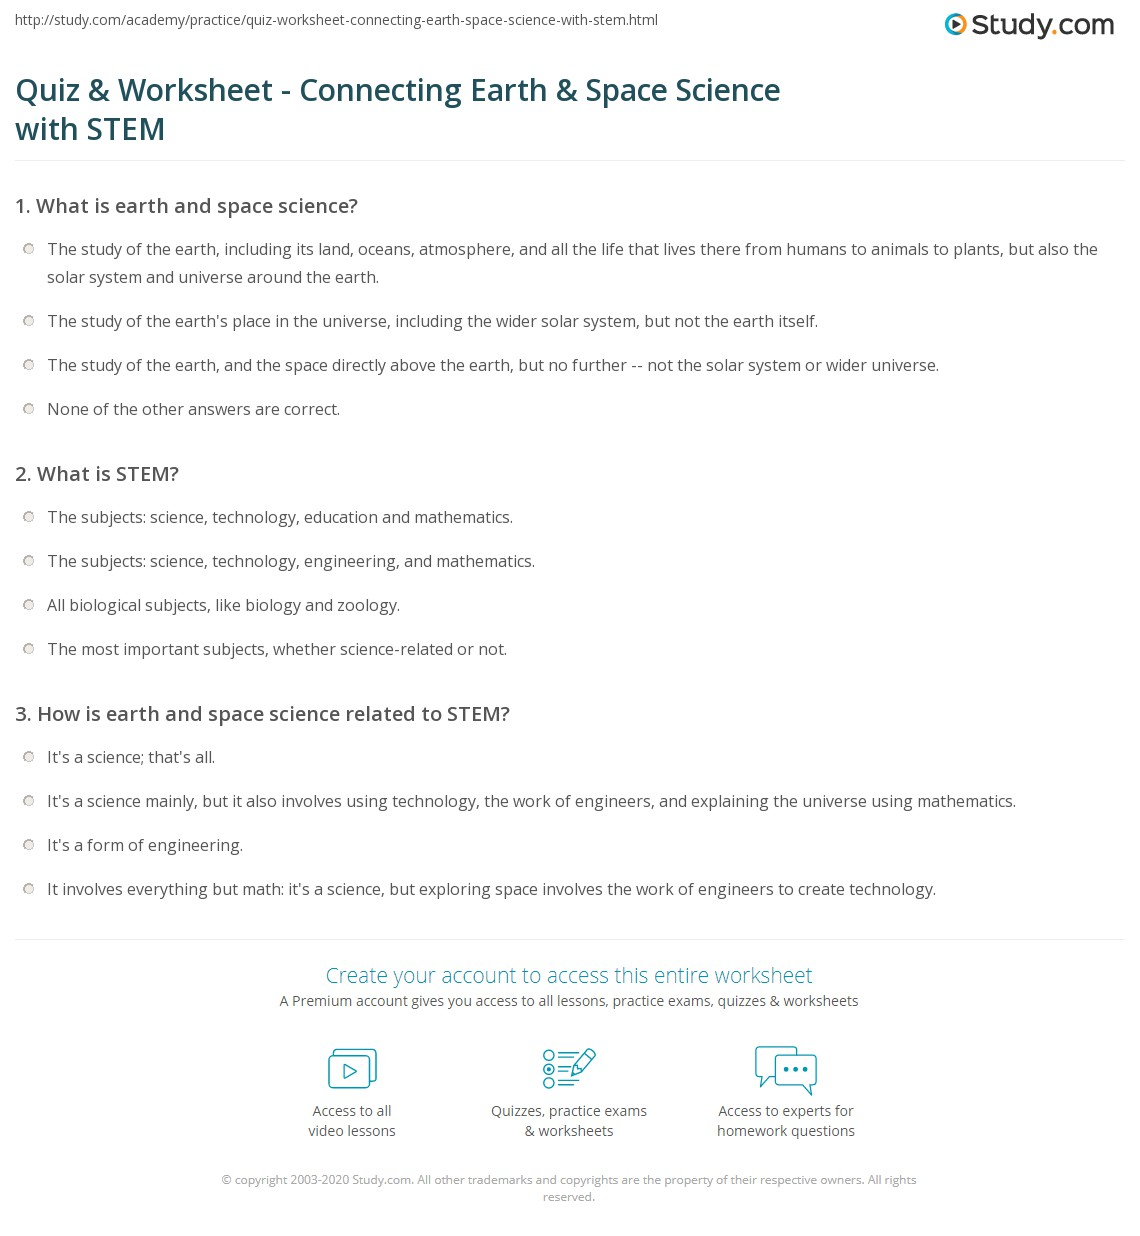 Worksheets Earth And Space Science Worksheets quiz worksheet connecting earth space science with stem print relationship worksheet